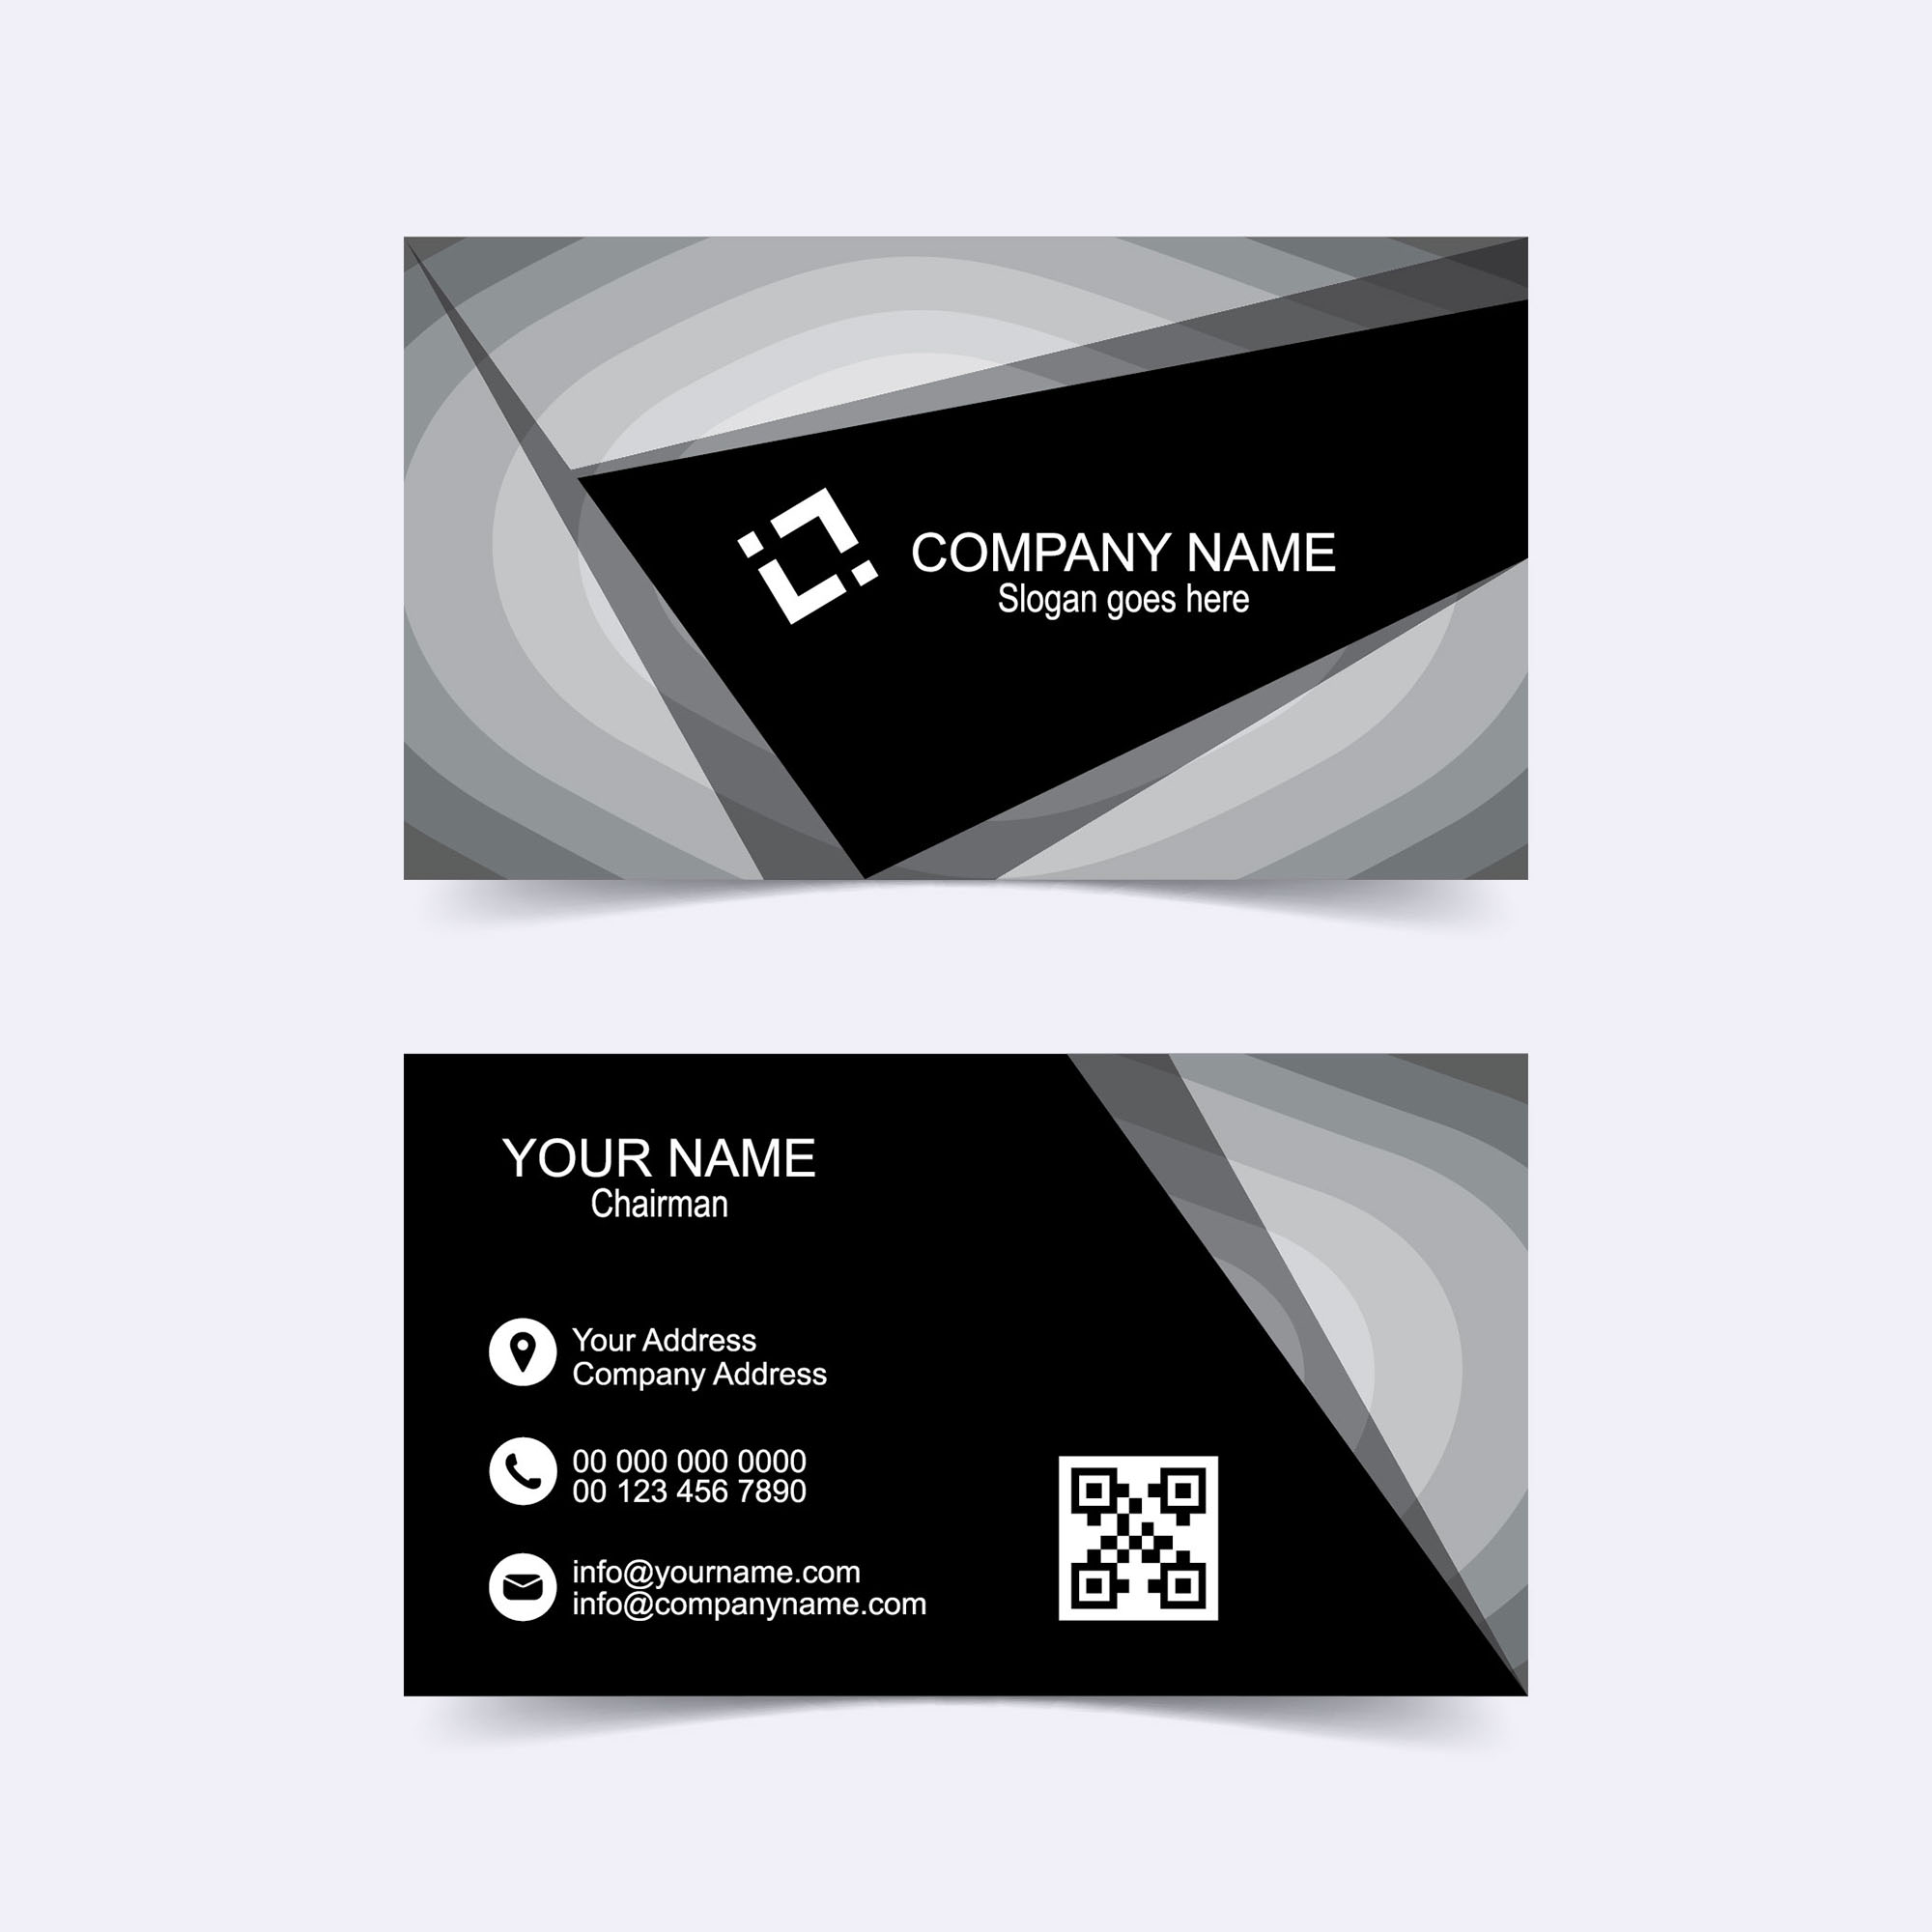 Abstract triangle business card template free download wisxi business card business cards business card design business card template design templates accmission